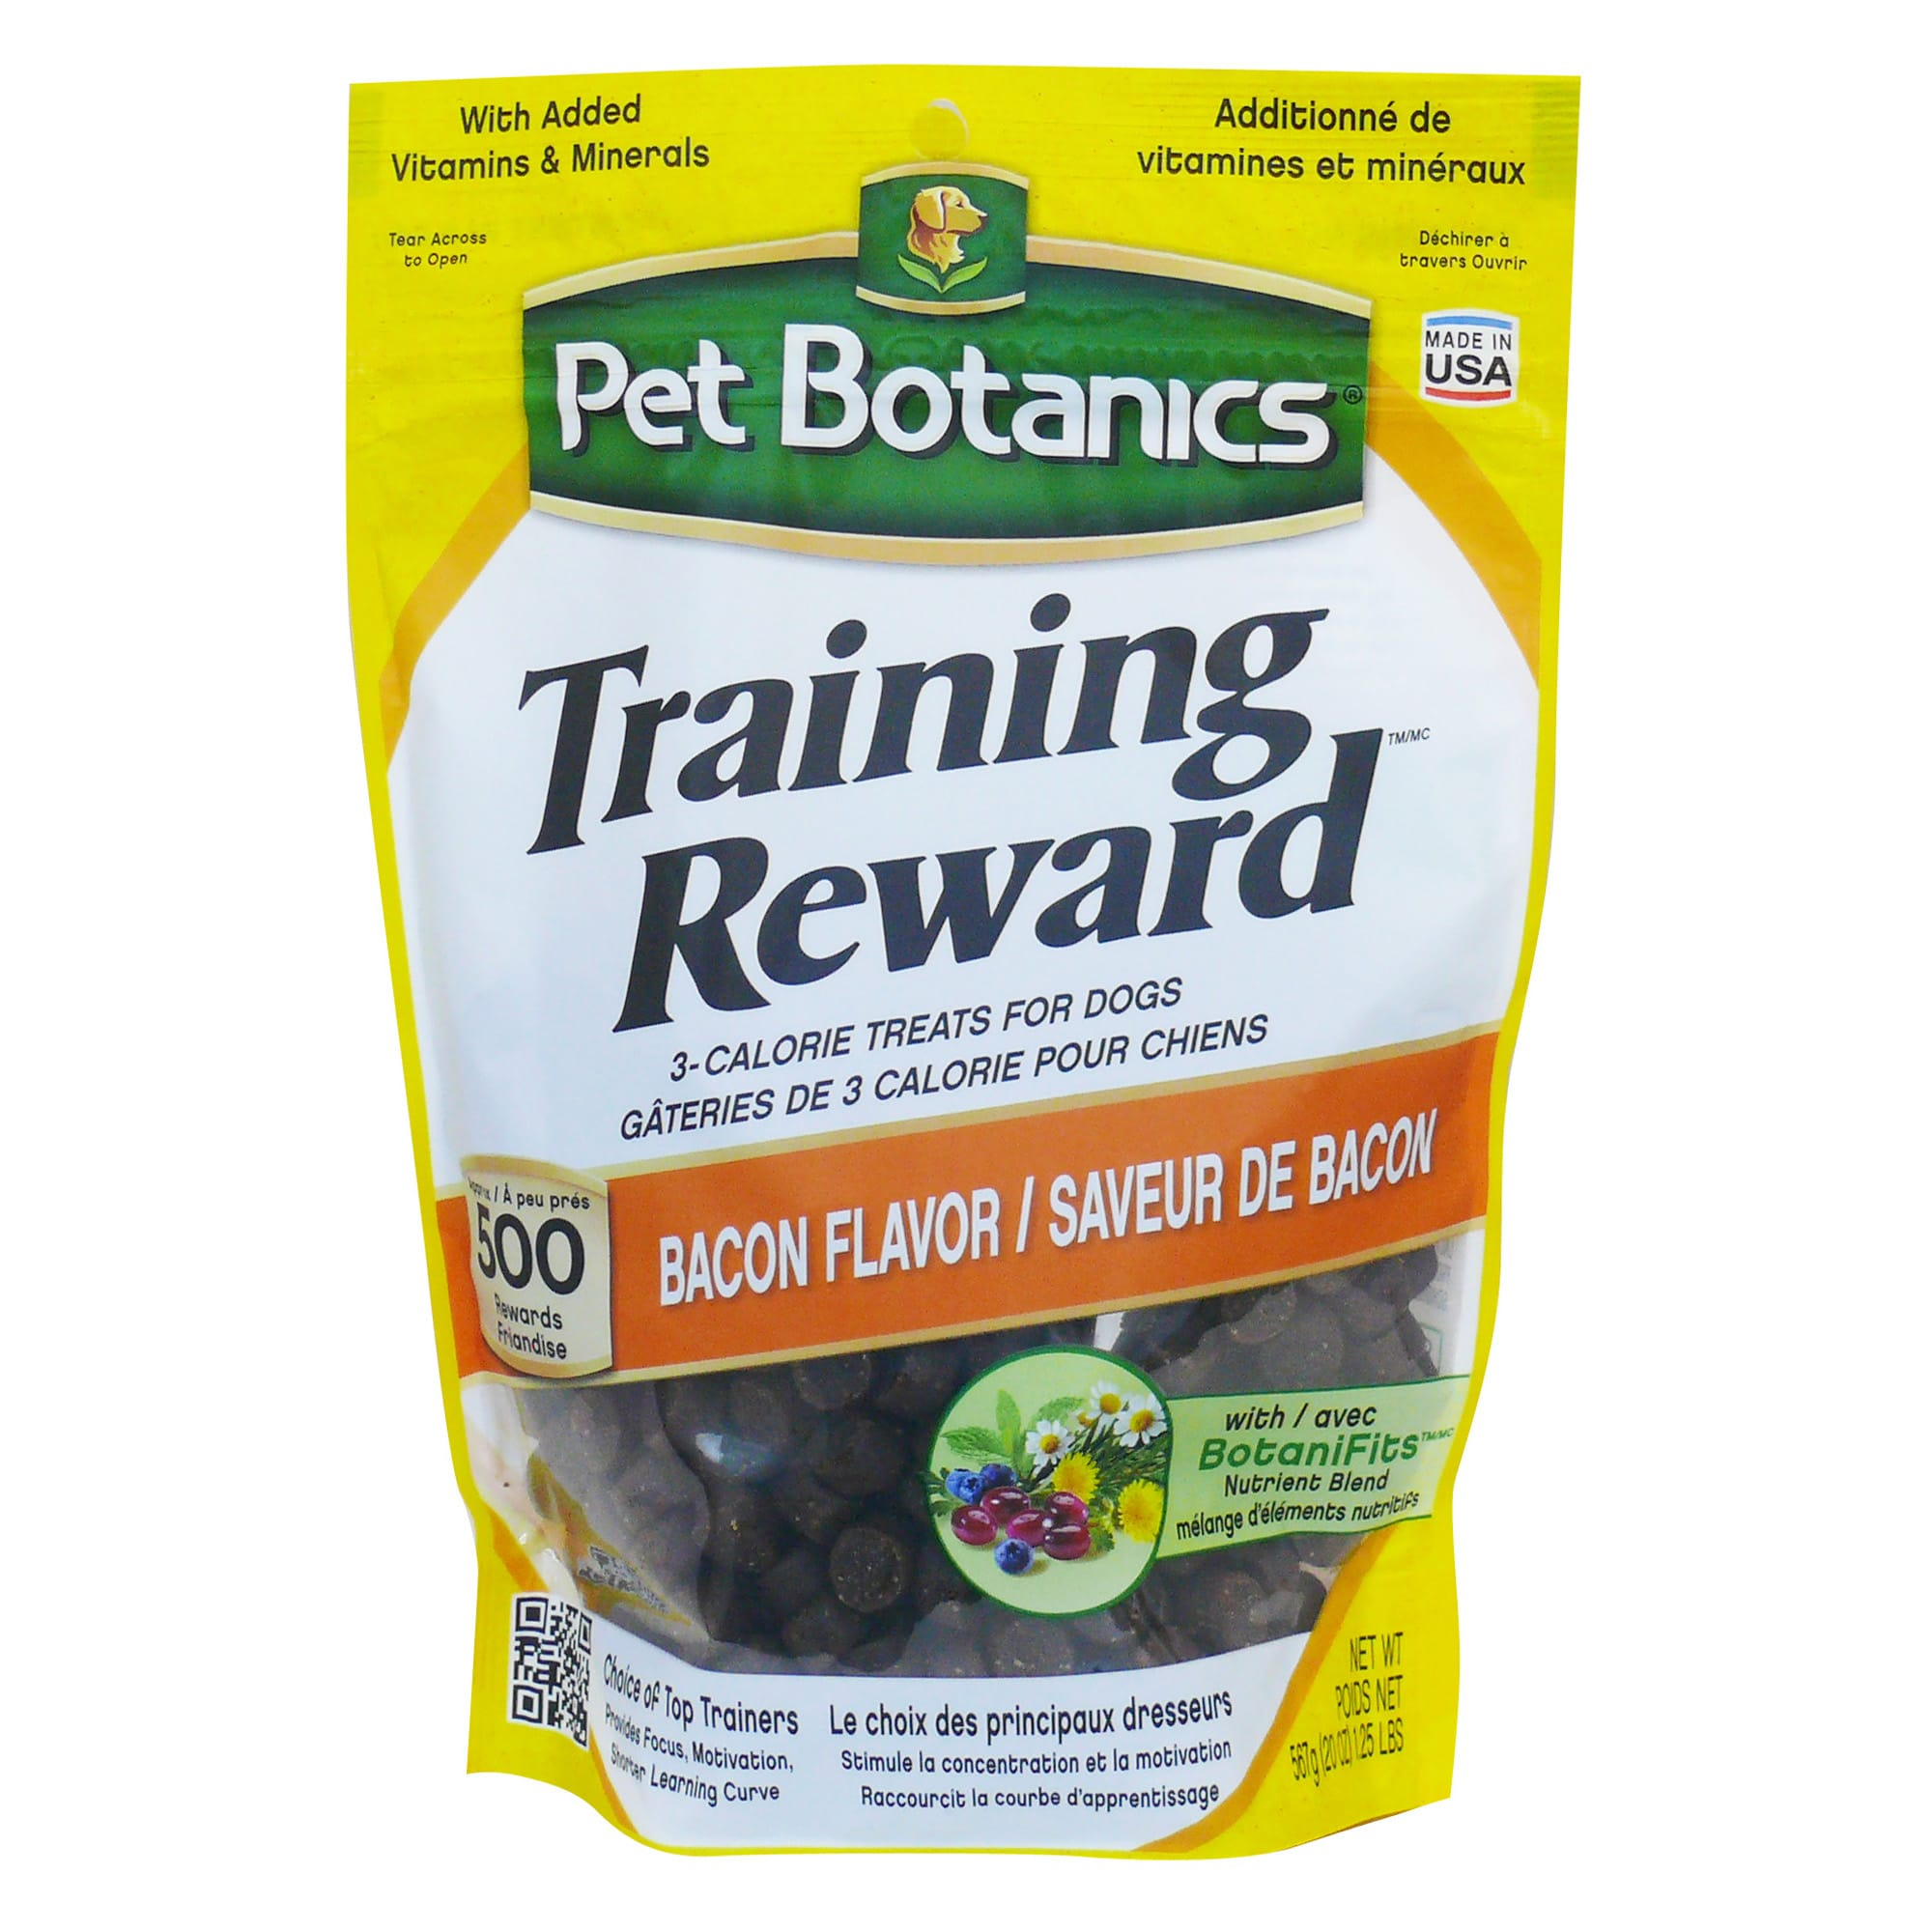 Pet Botanics Training Reward Bacon Flavor Dog Treats, 20 oz. bag, 500 count